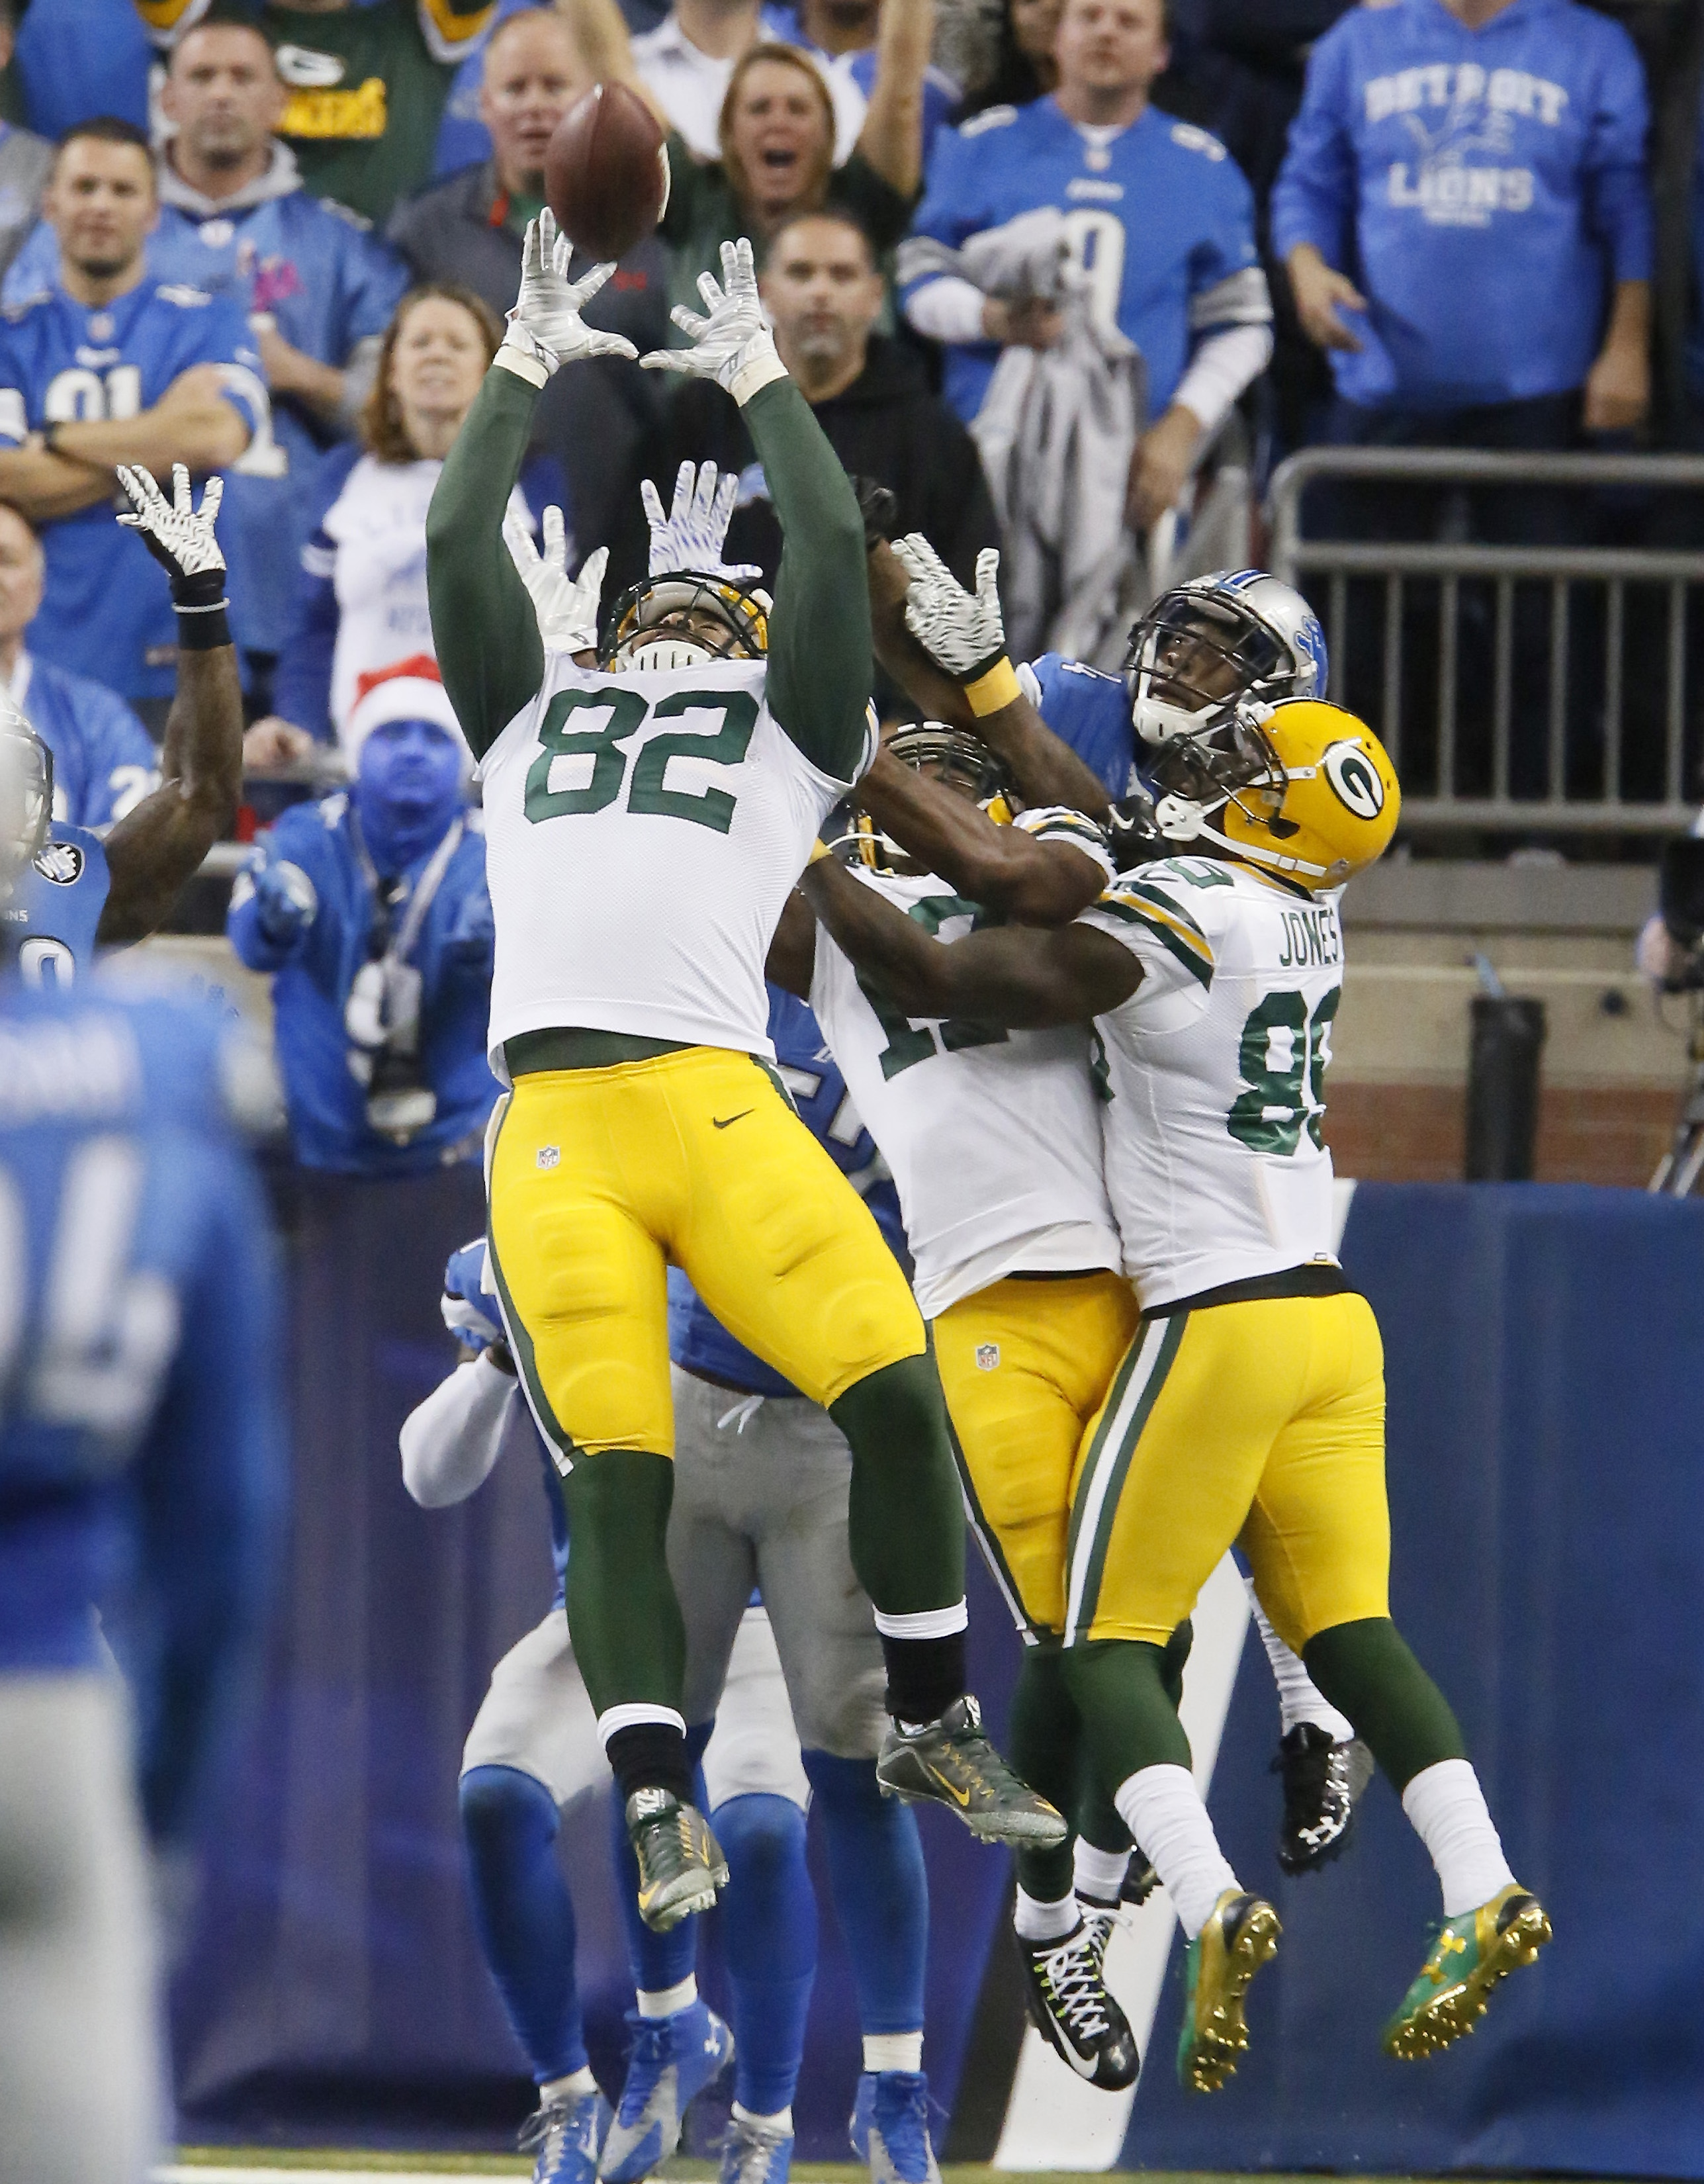 Green Bay Packers tight end Richard Rodgers (82) reaches to catch the game winning pass on the last play of an NFL football game against the Detroit Lions, Thursday, Dec. 3, 2015, in Detroit. The Packers defeated the Lions 27-23. (AP Photo/Duane Burleson)